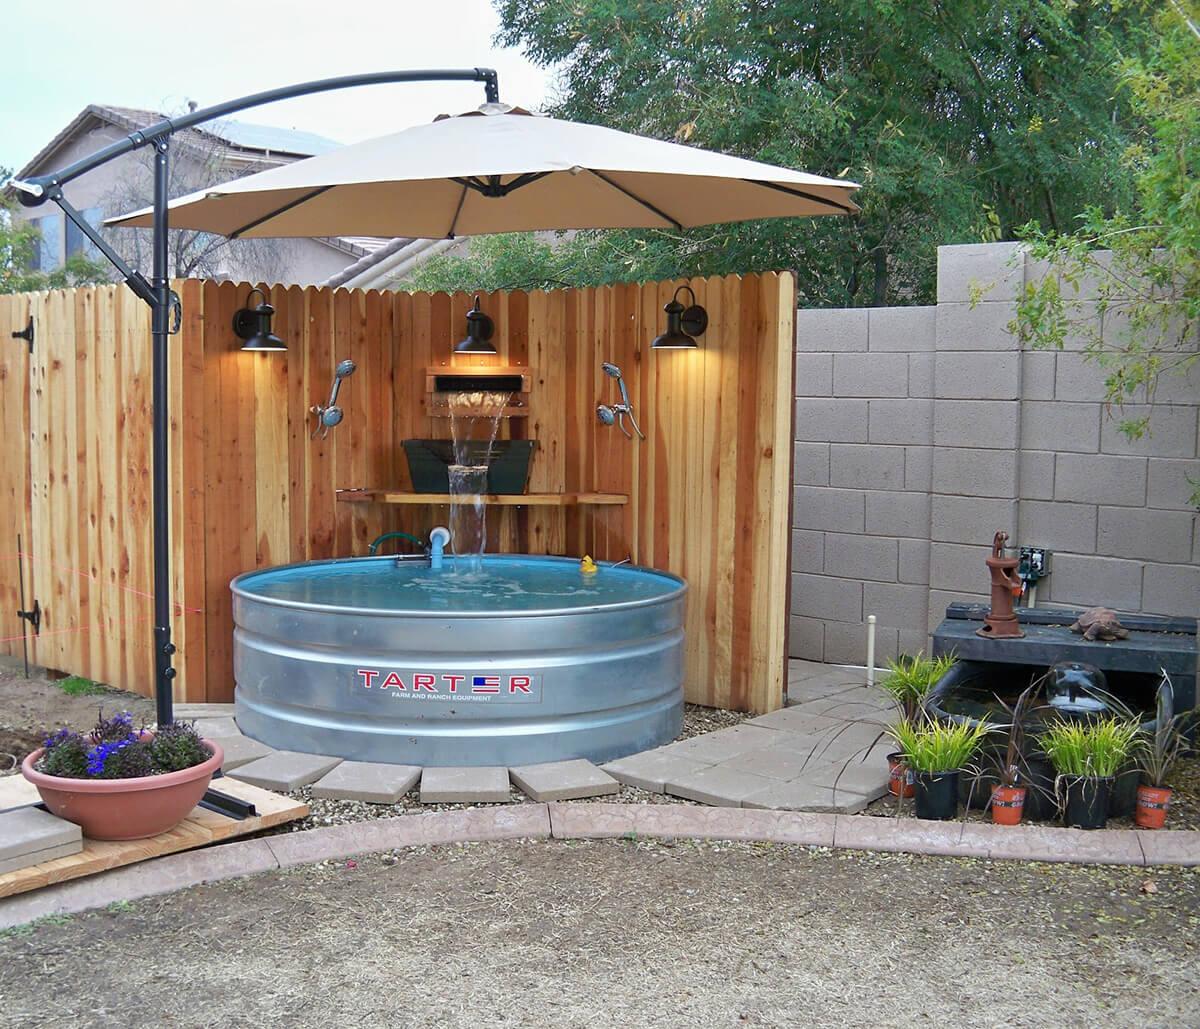 Your Own Private Pool on a Budget